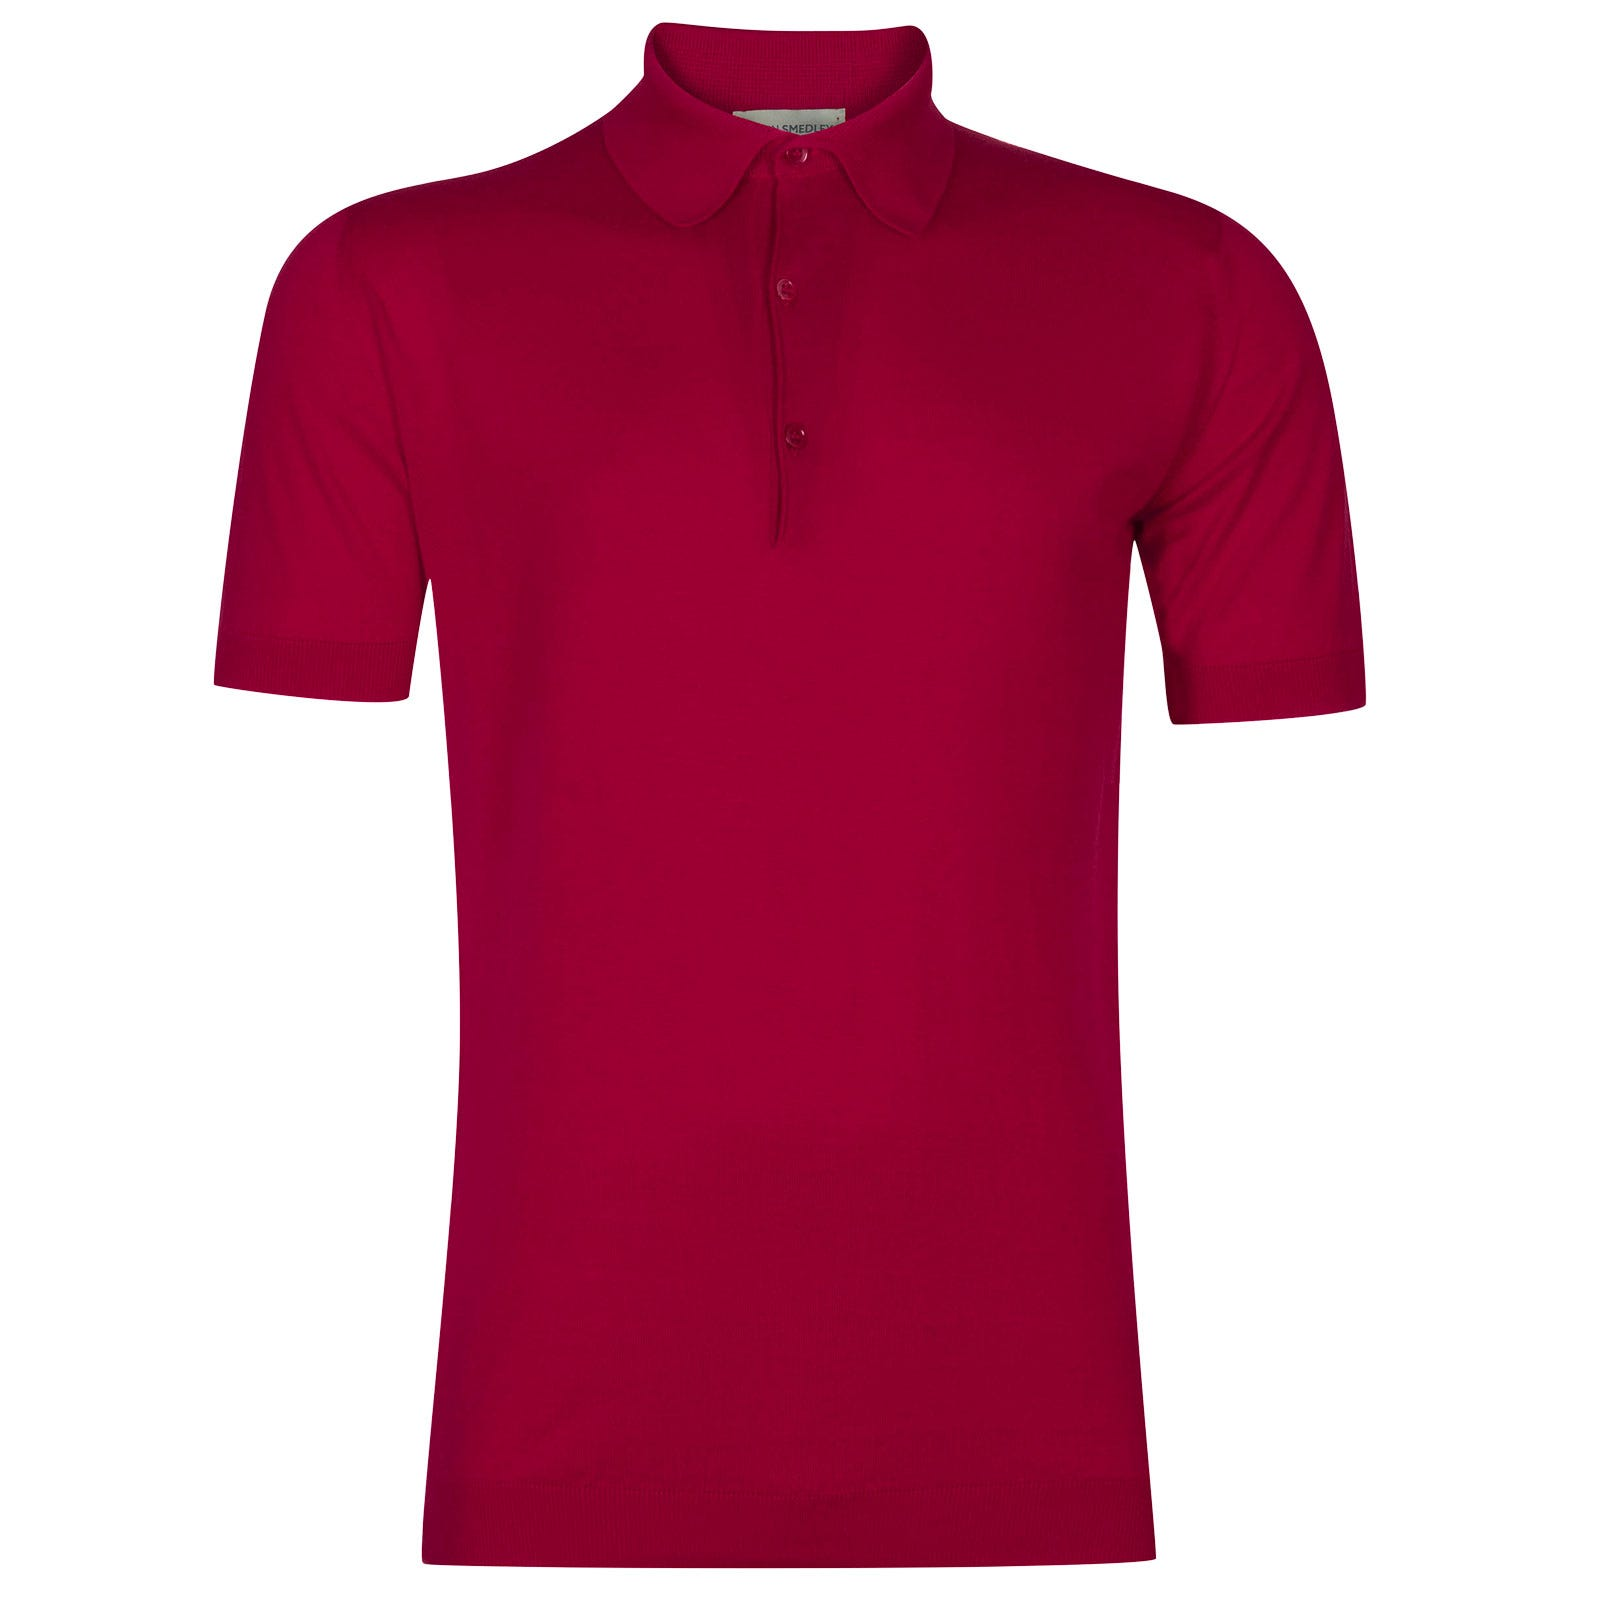 John Smedley adrian Sea Island Cotton Shirt in Scarlet Sky-S